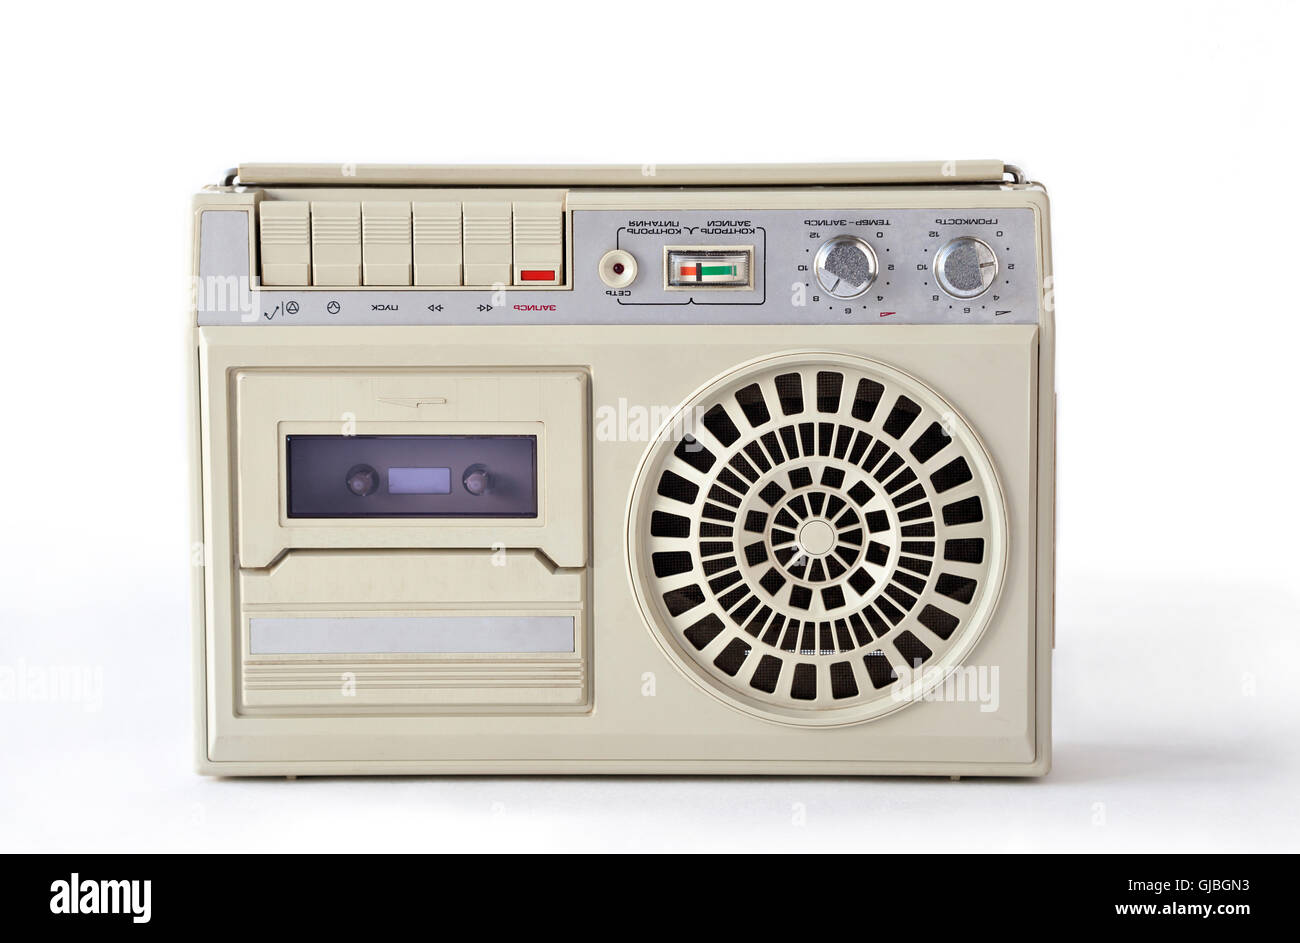 Old cassette tape player and recorder from USSR on white background - Stock Image